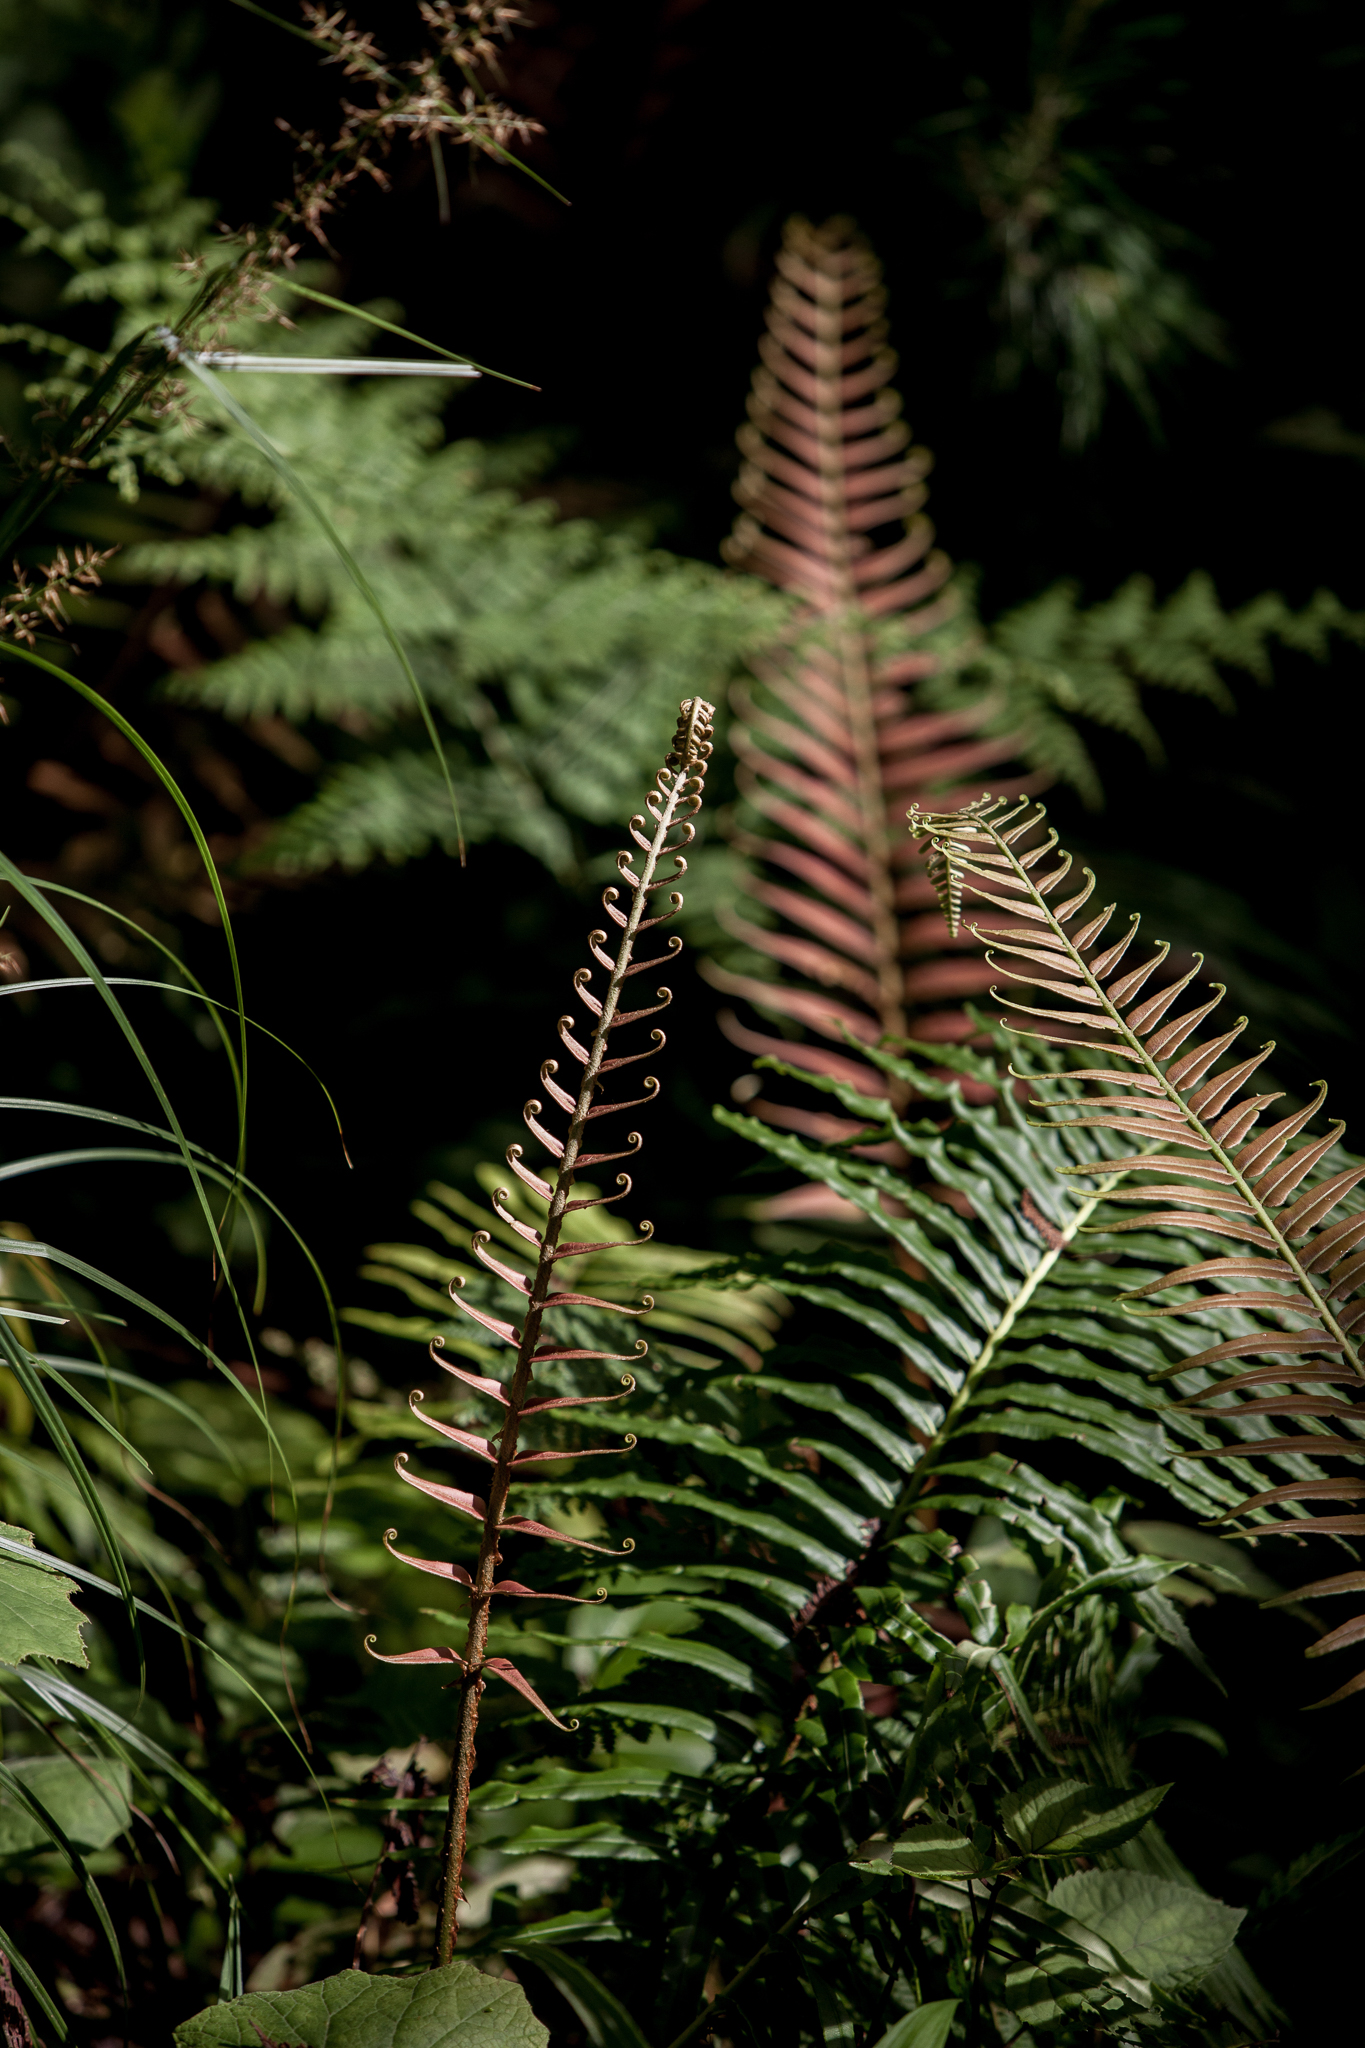 Ferns, which are plentiful in Veracruz's cloud forests, are regularly harvested for flower arrangements.